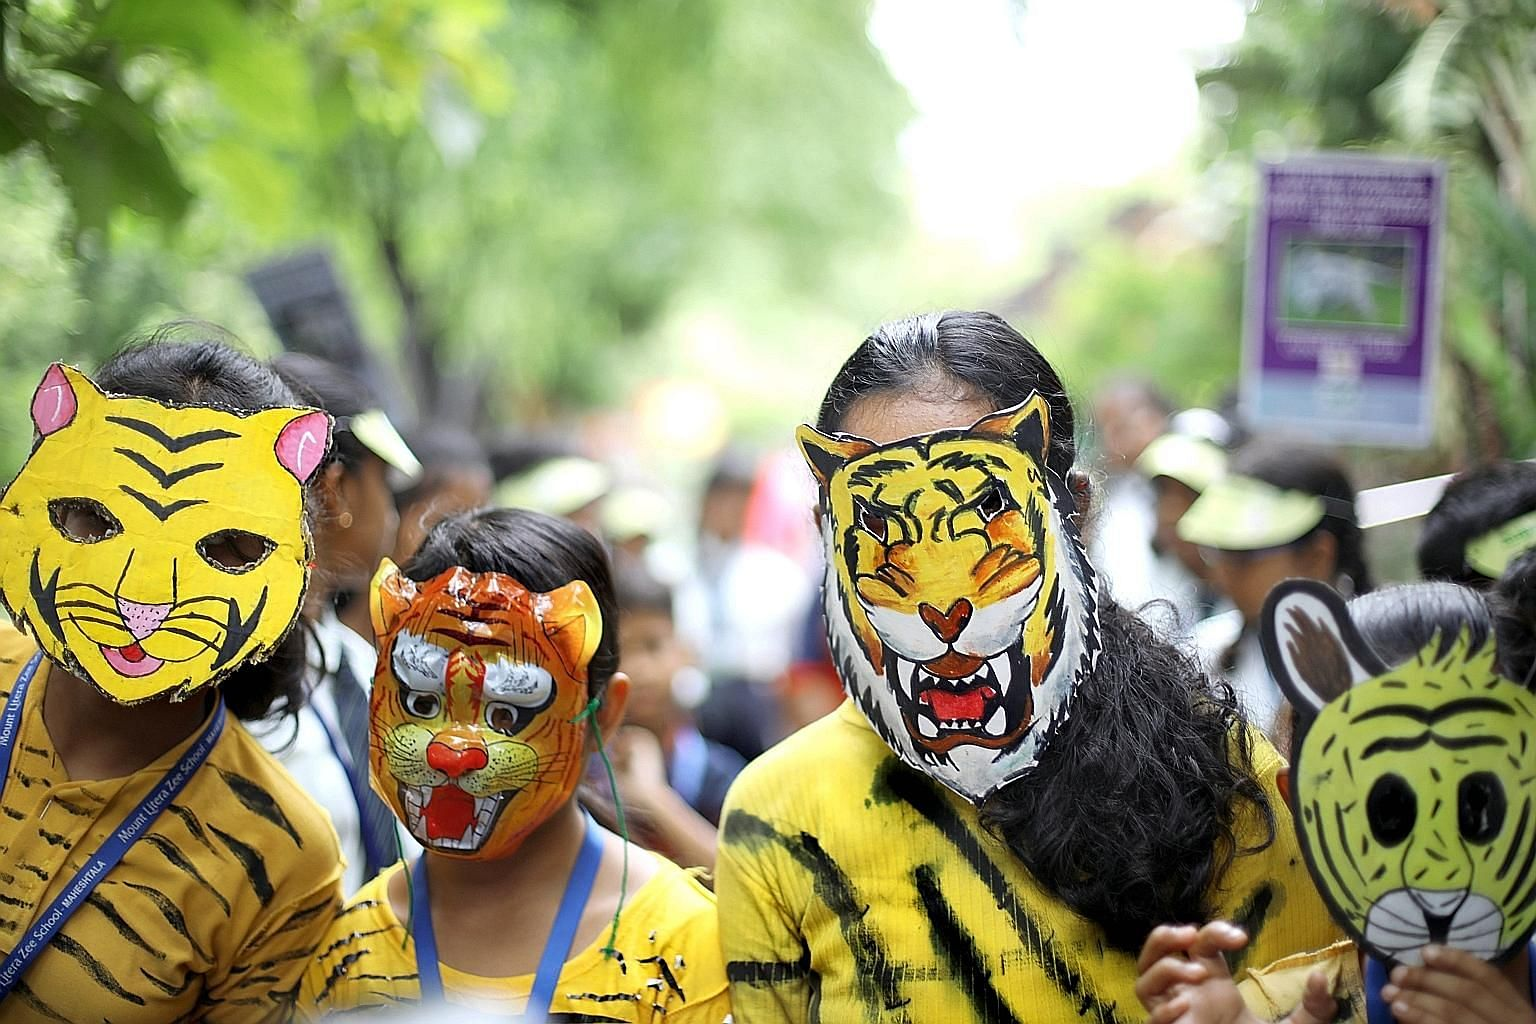 Students in Bengal tiger masks at a march on World Tiger Day in Kolkata, India. There are only about 4,000 tigers in the world, with India home to more than 70 per cent of them. It is the home of the Bengal tiger - also found in smaller numbers in Ba